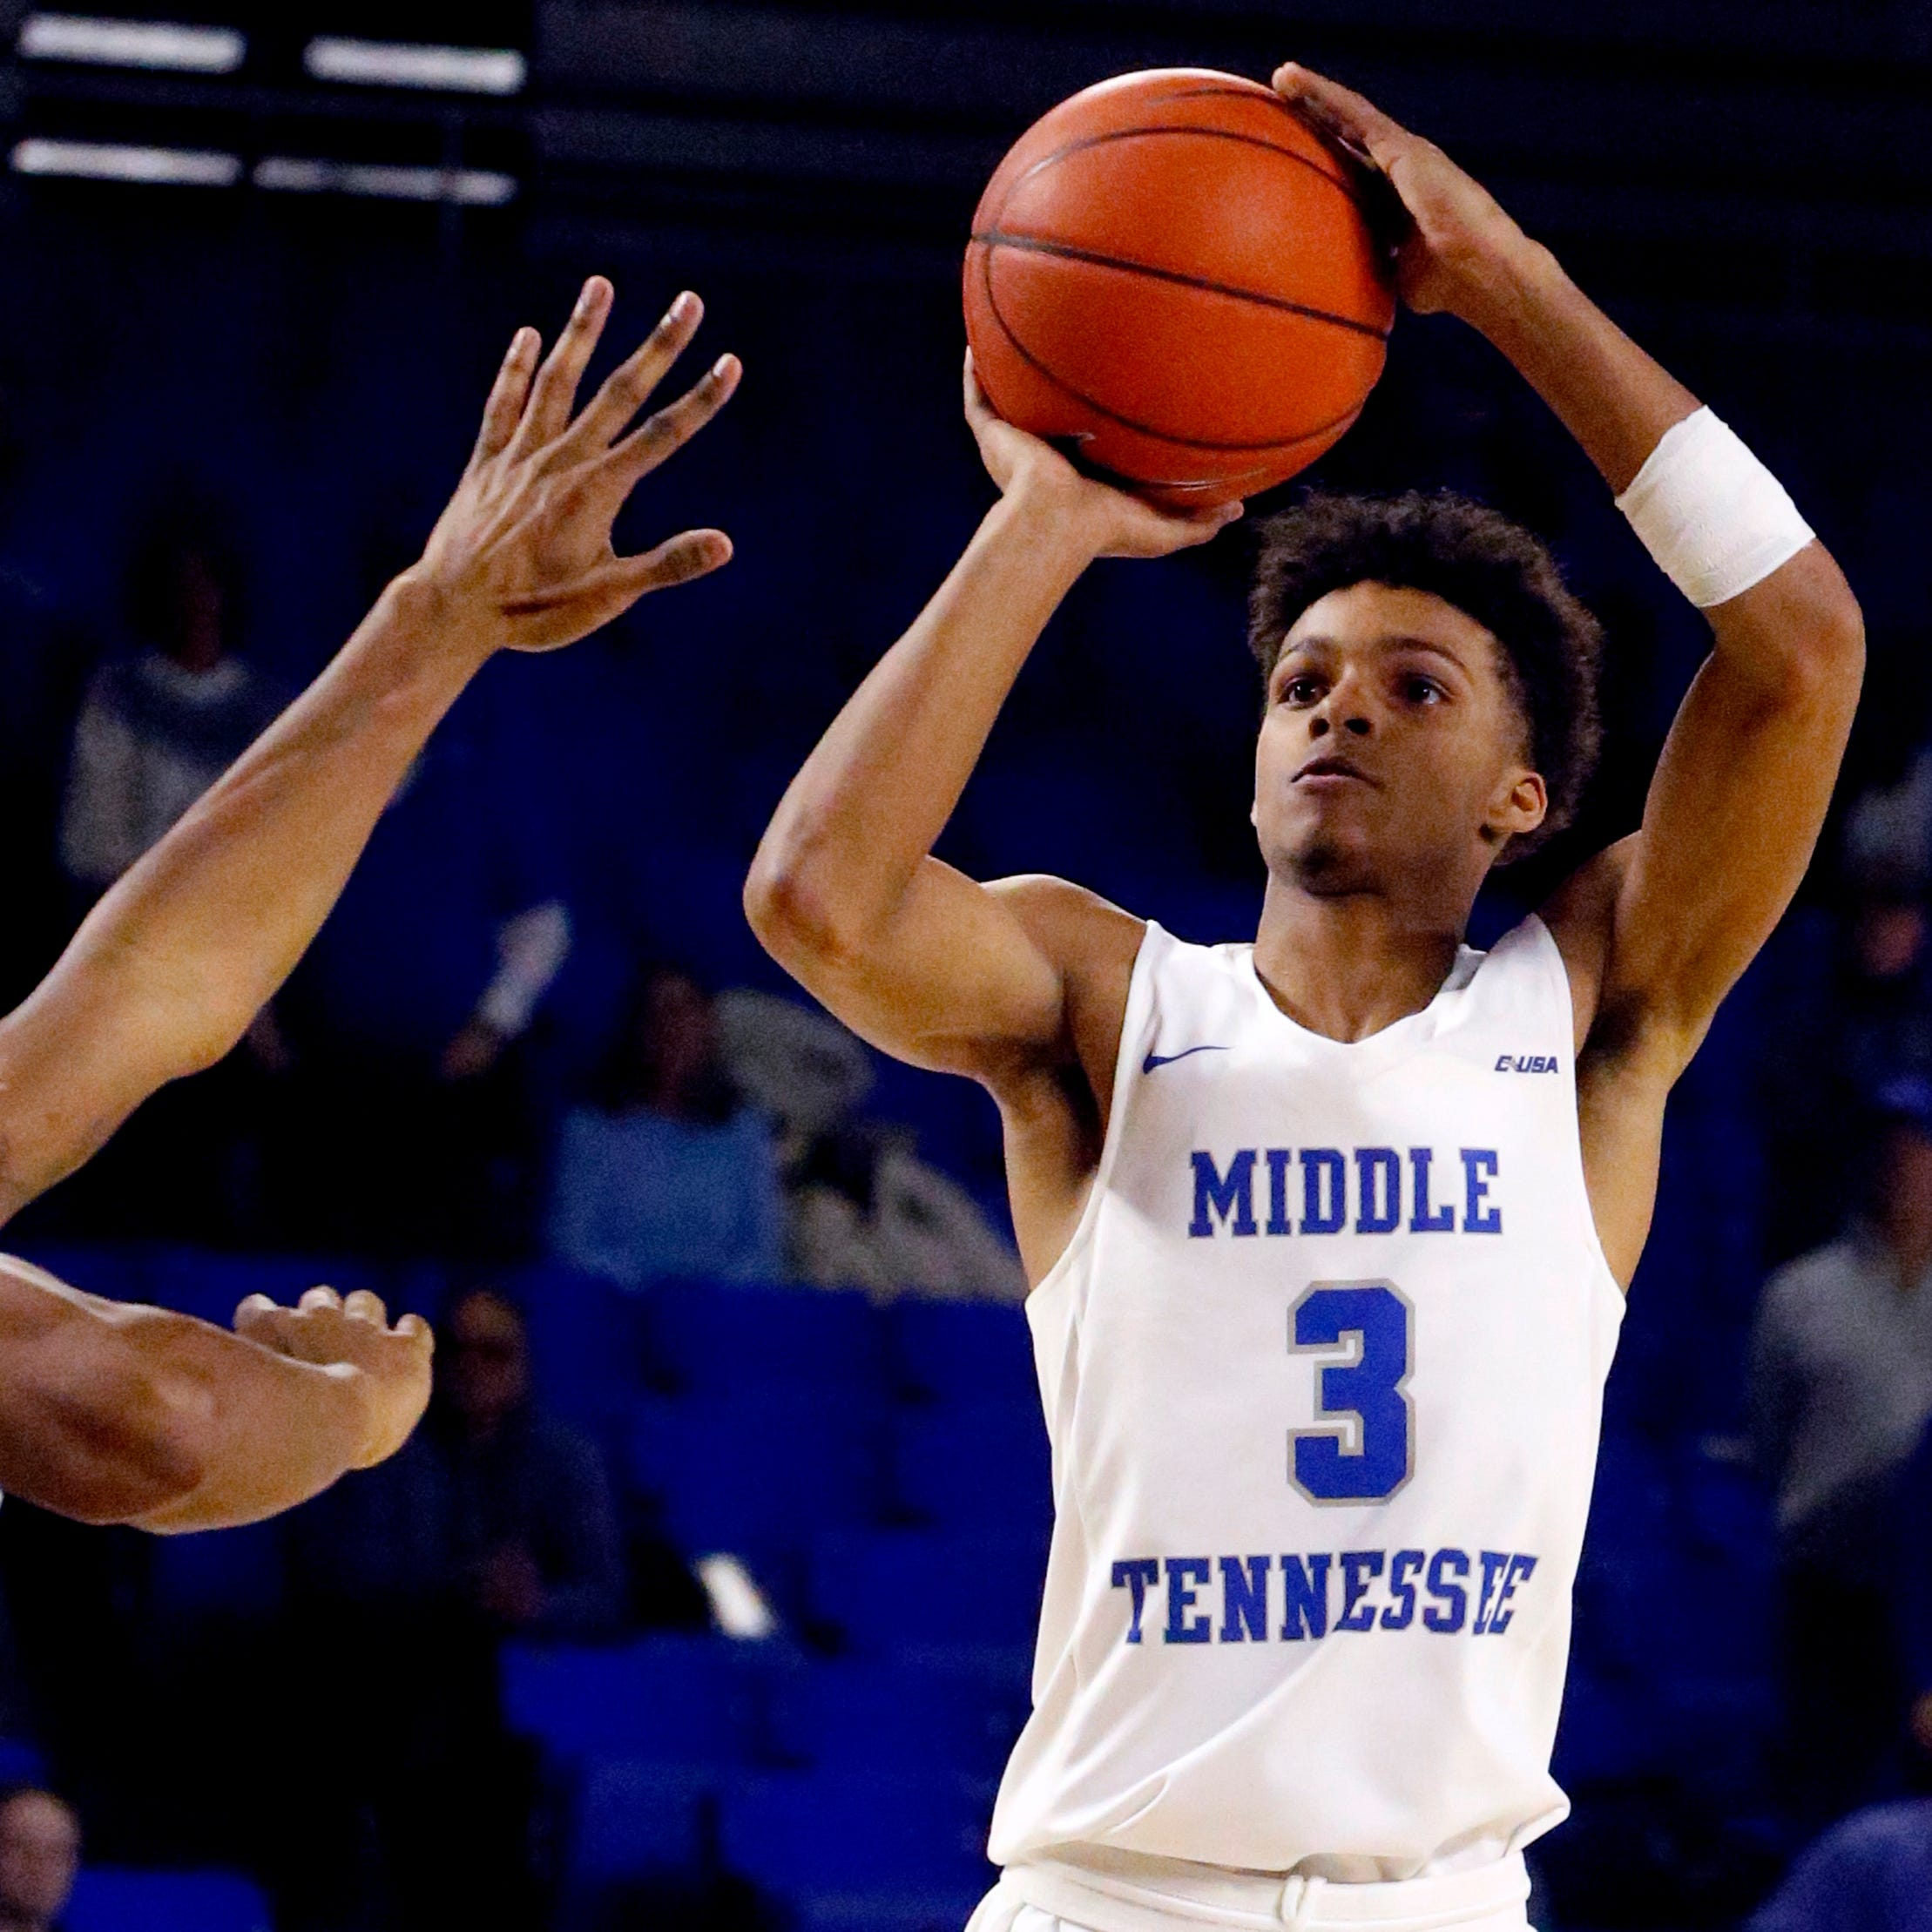 MTSU's season comes to an end with a loss to UAB in the Conference USA Basketball Tournament